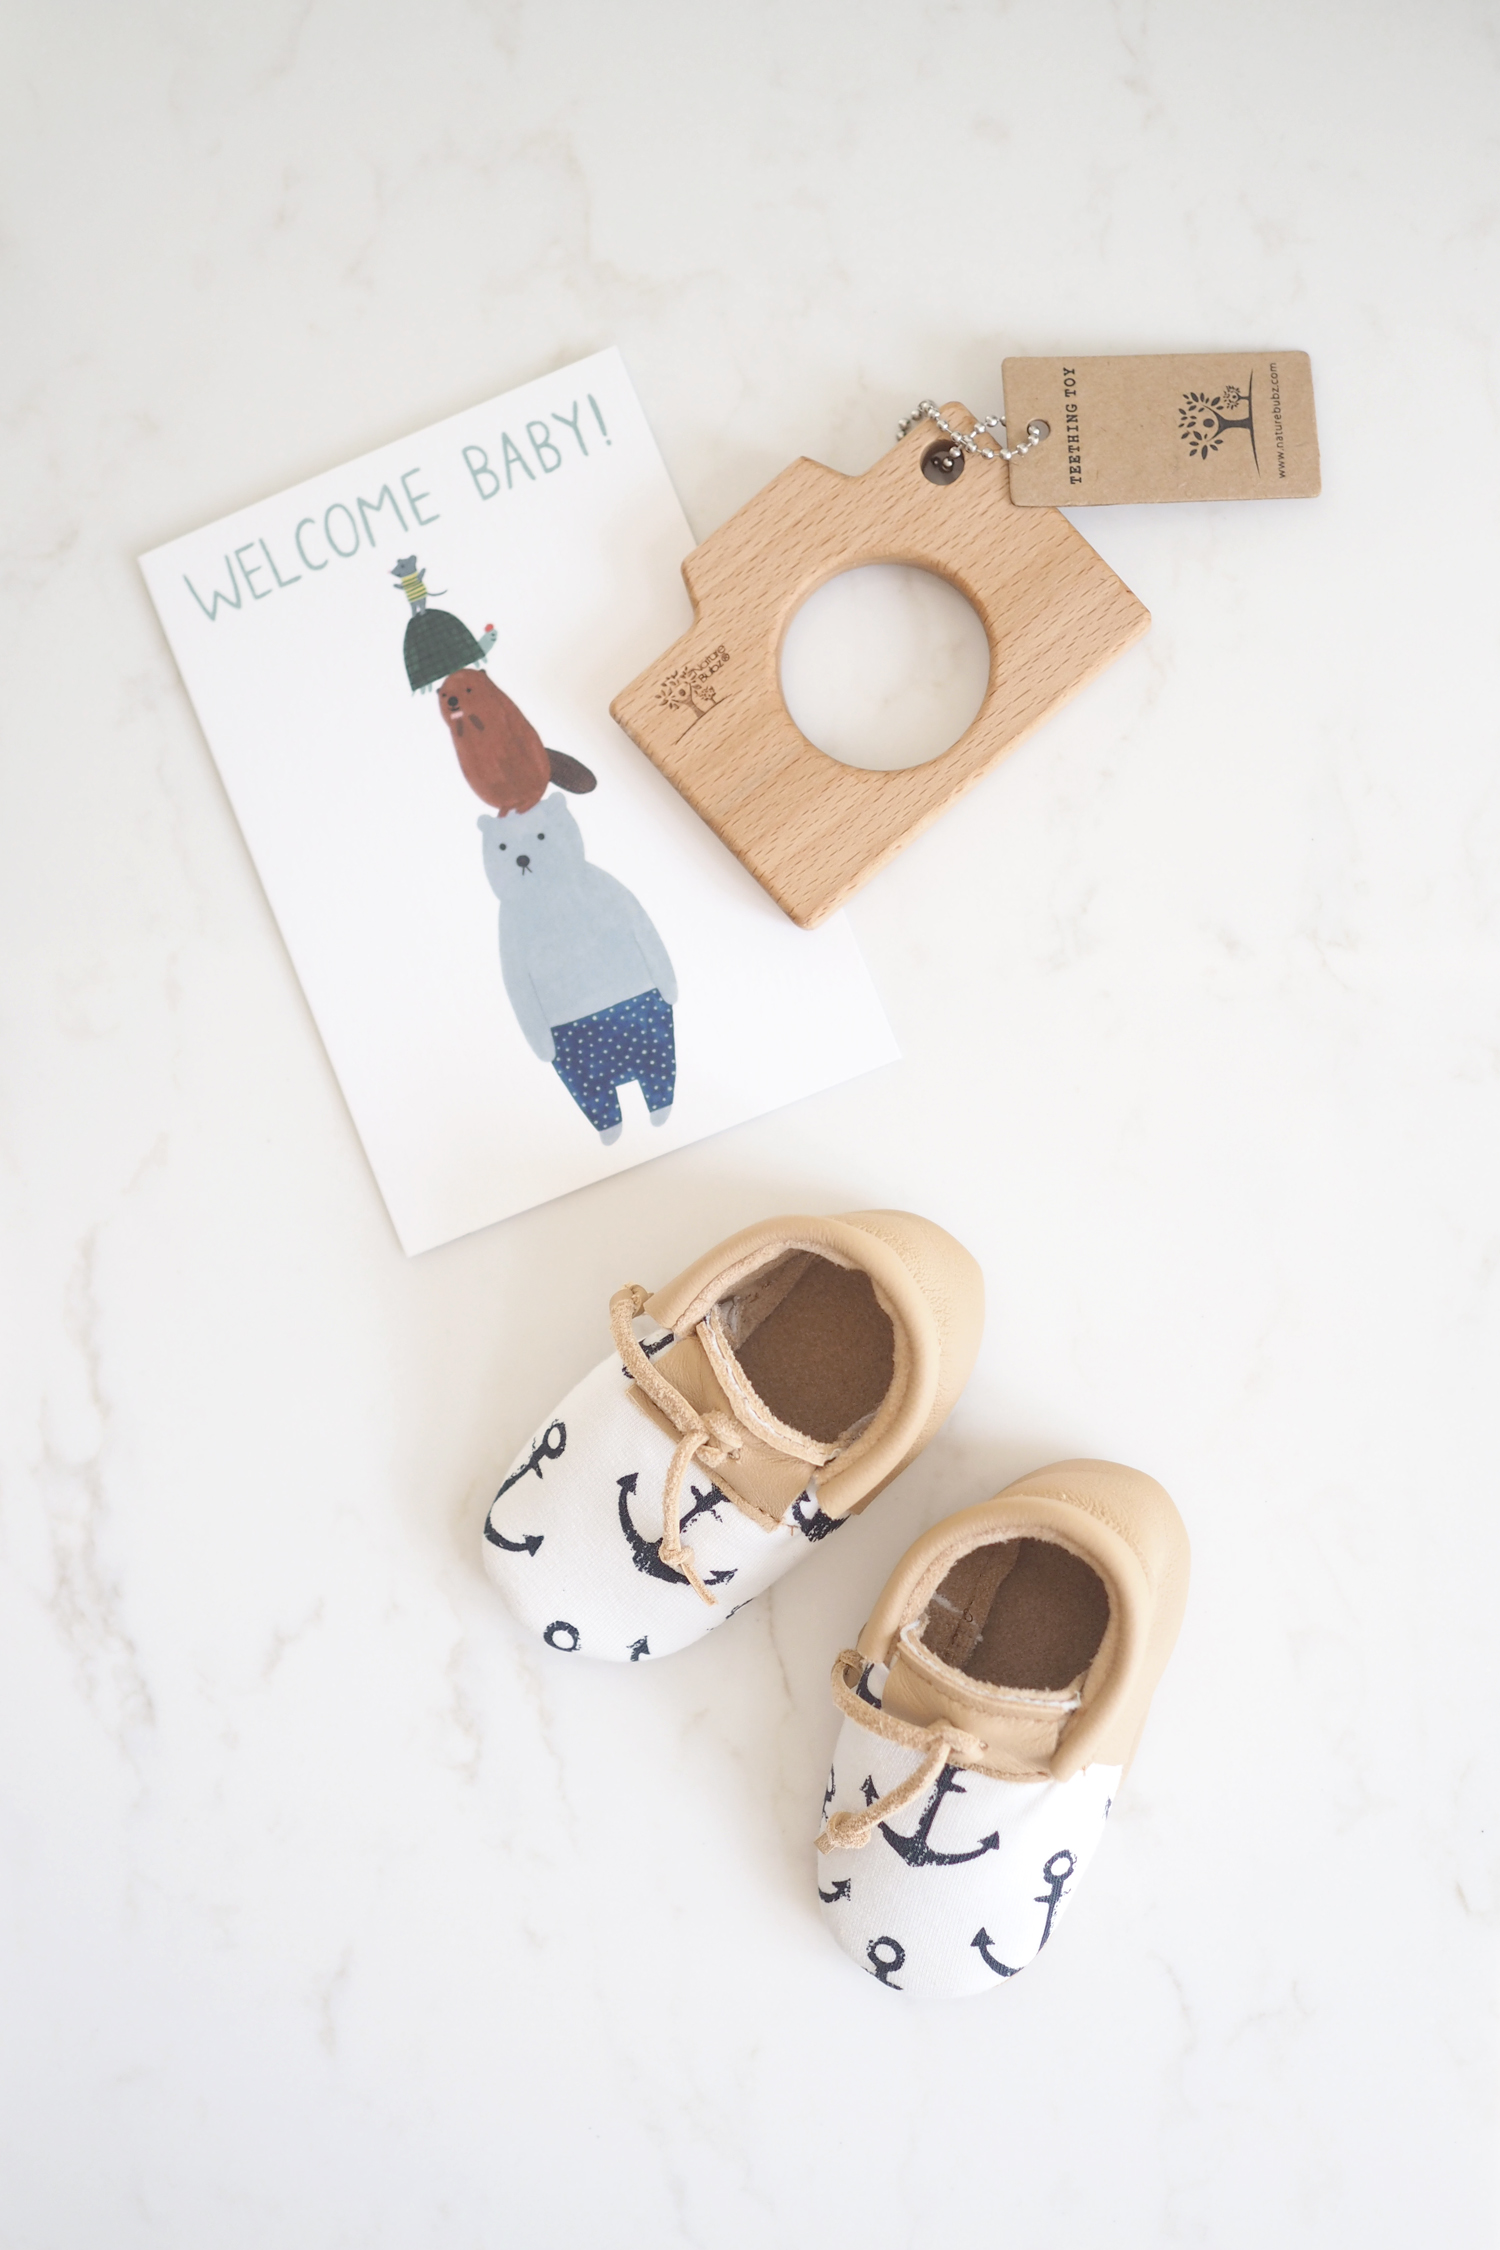 Char and the city - chrtistening gift ideas for a baby - for Minis and Mommies - read more on the blog: //www.idealista.fi/charandthecity/